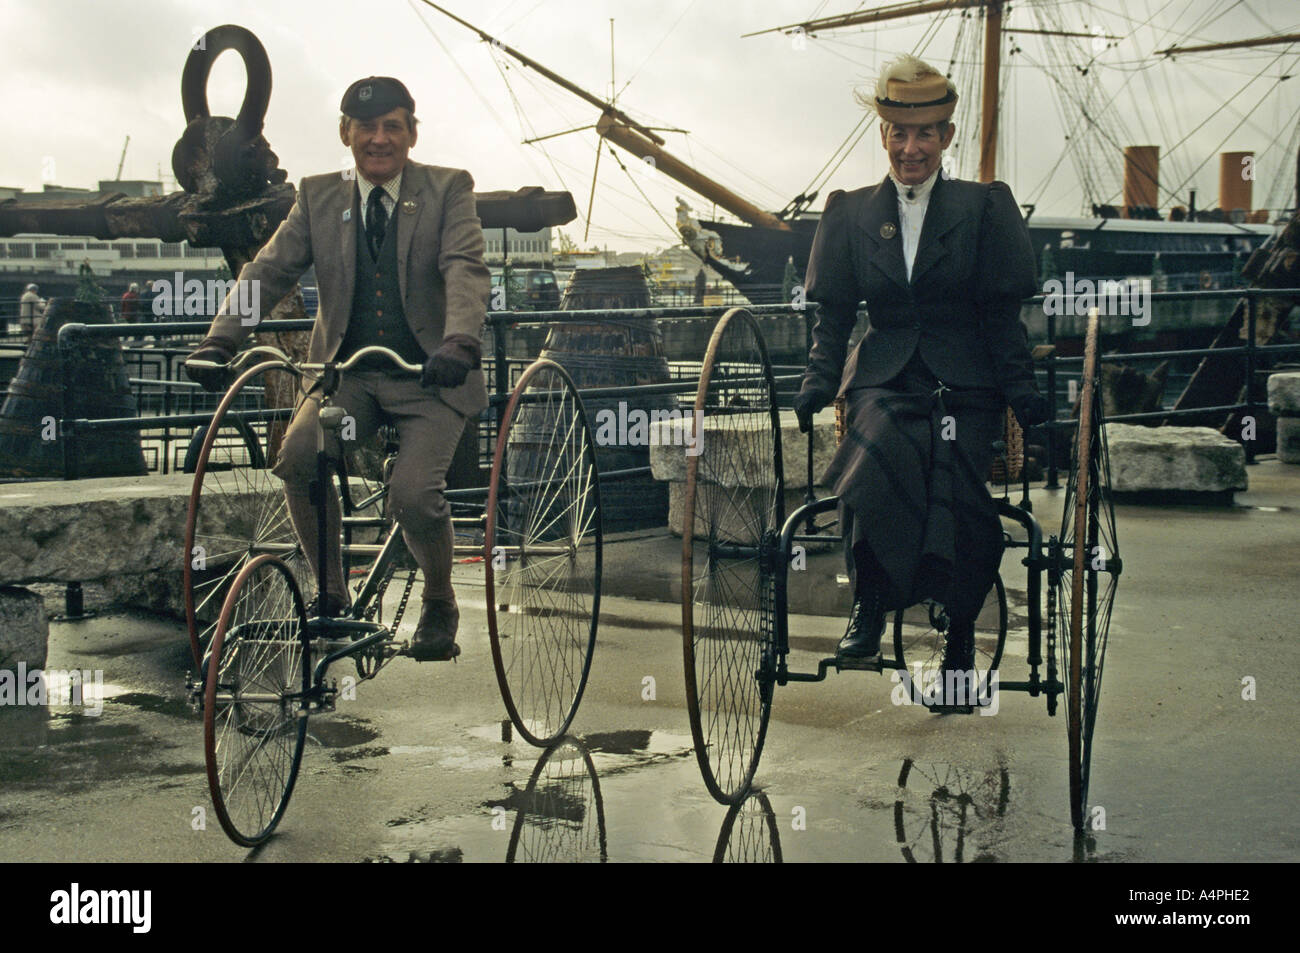 elderly woman and gentleman riding old fashioned bicycles re enactment in Portsmouth Docks Hampshire - Stock Image